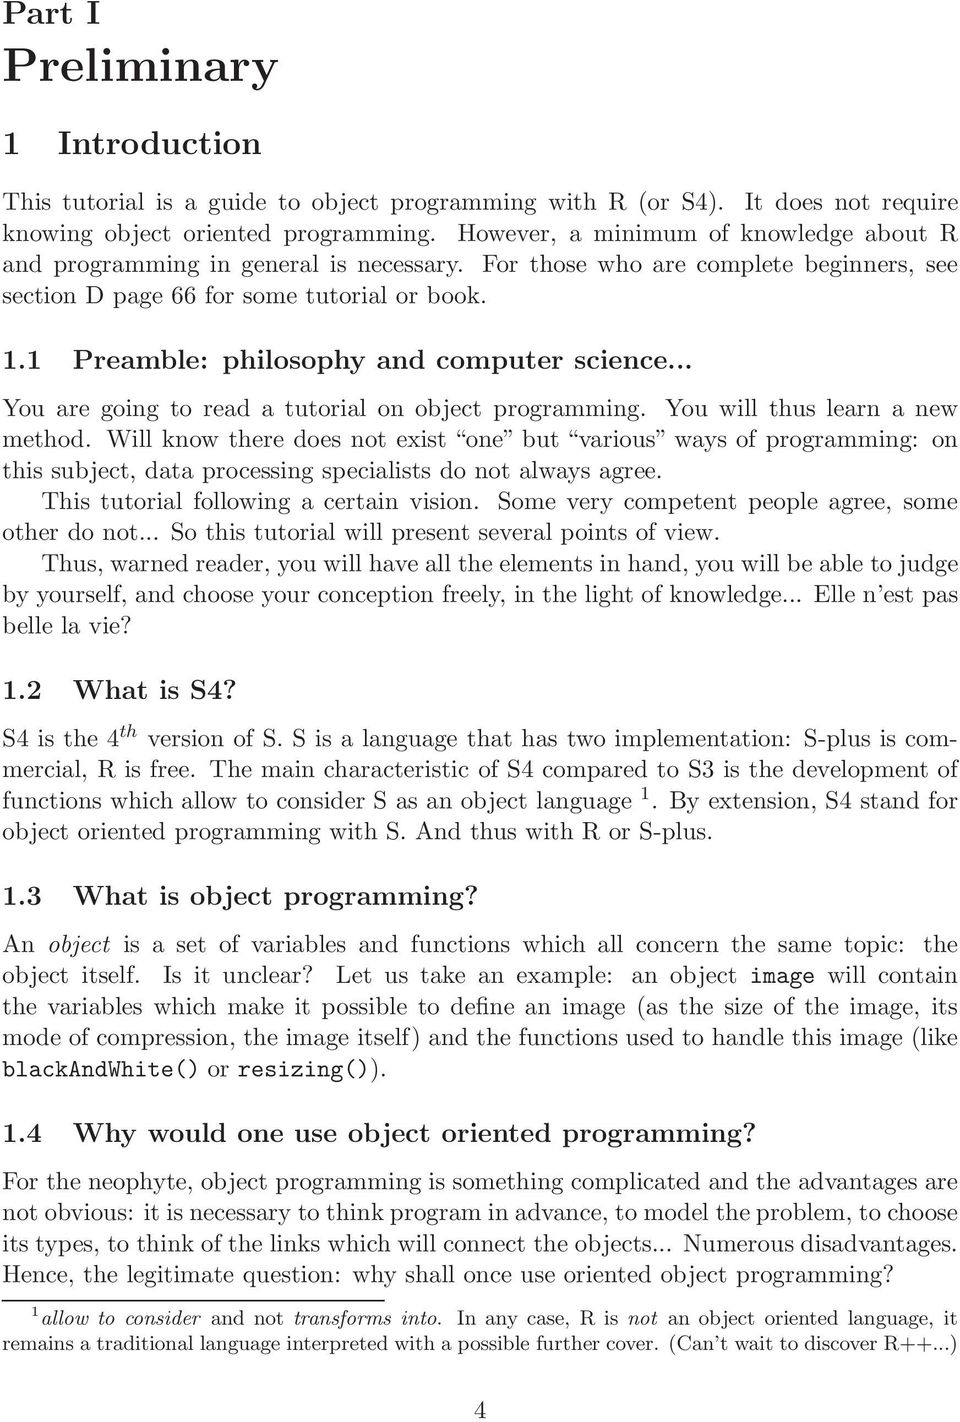 1 Preamble: philosophy and computer science... You are going to read a tutorial on object programming. You will thus learn a new method.